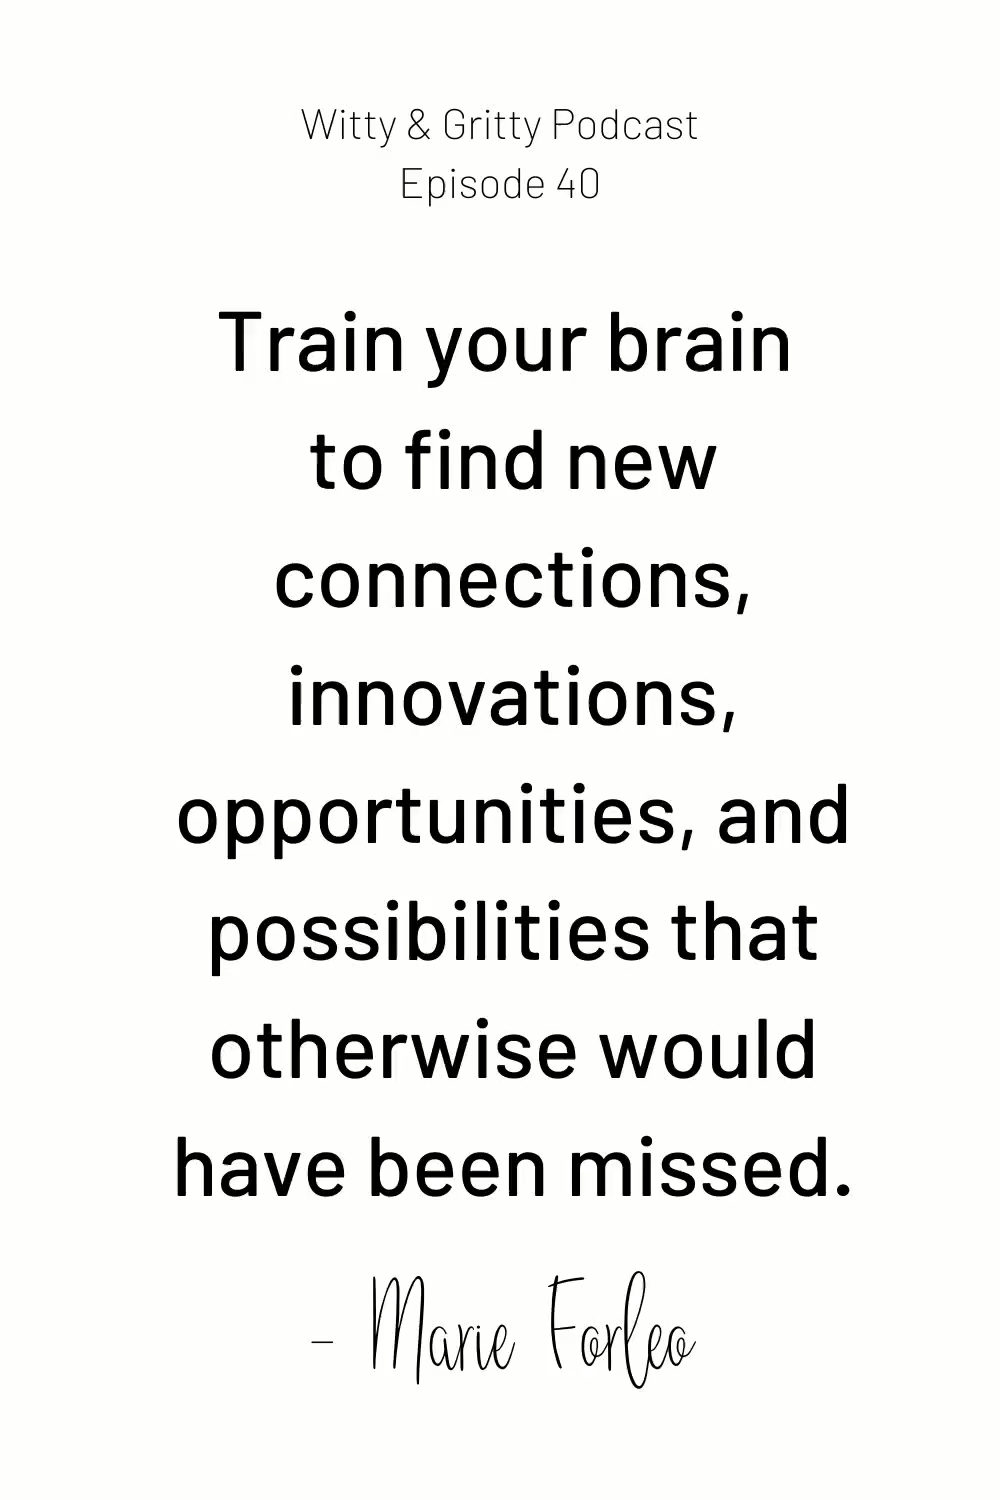 New Connections and Opportunities